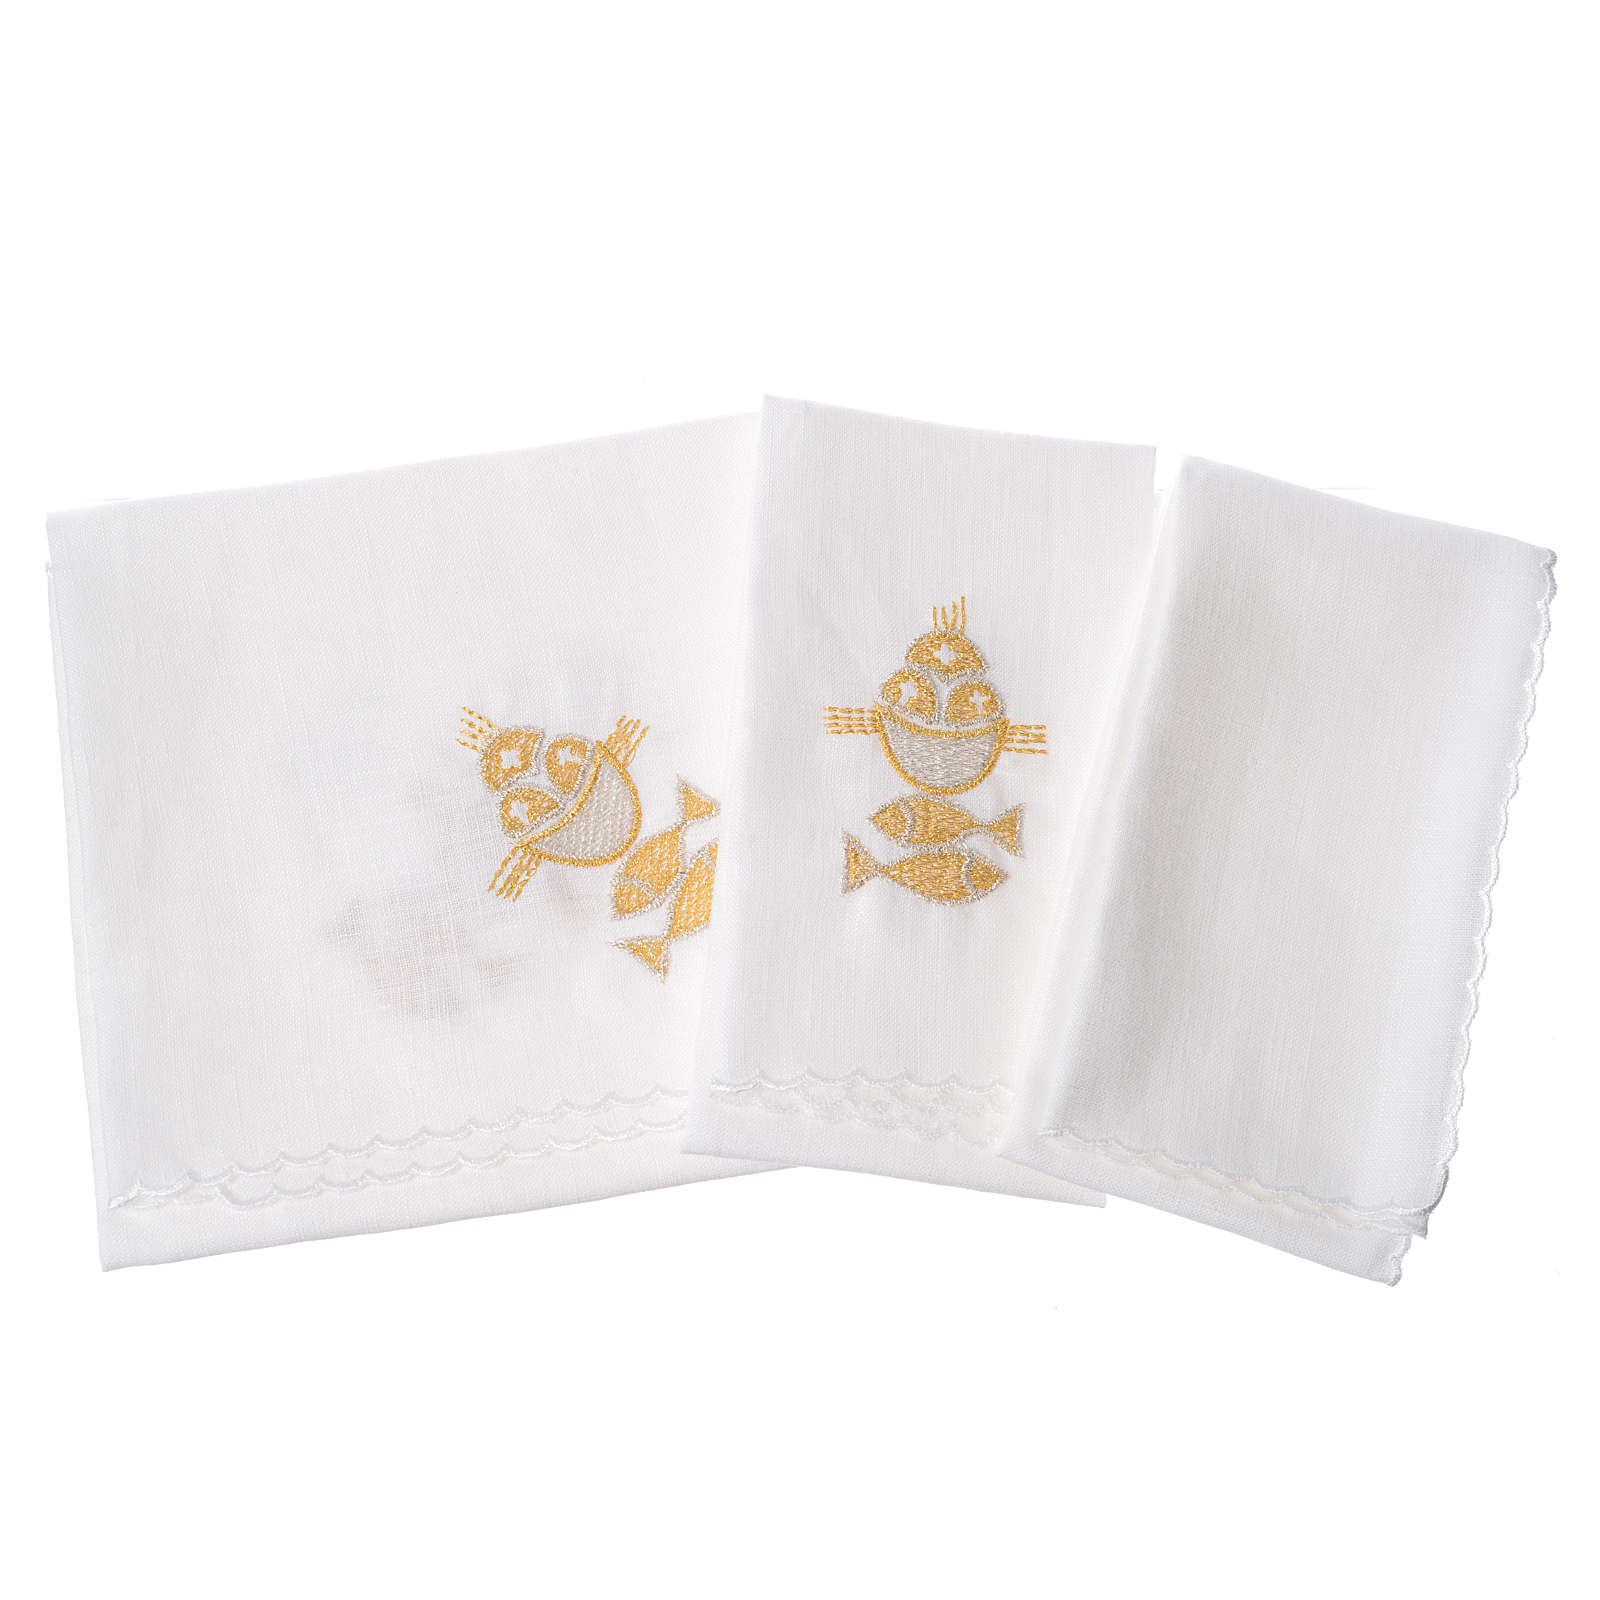 Altar linens set, 100% linen, fish and loaves 4